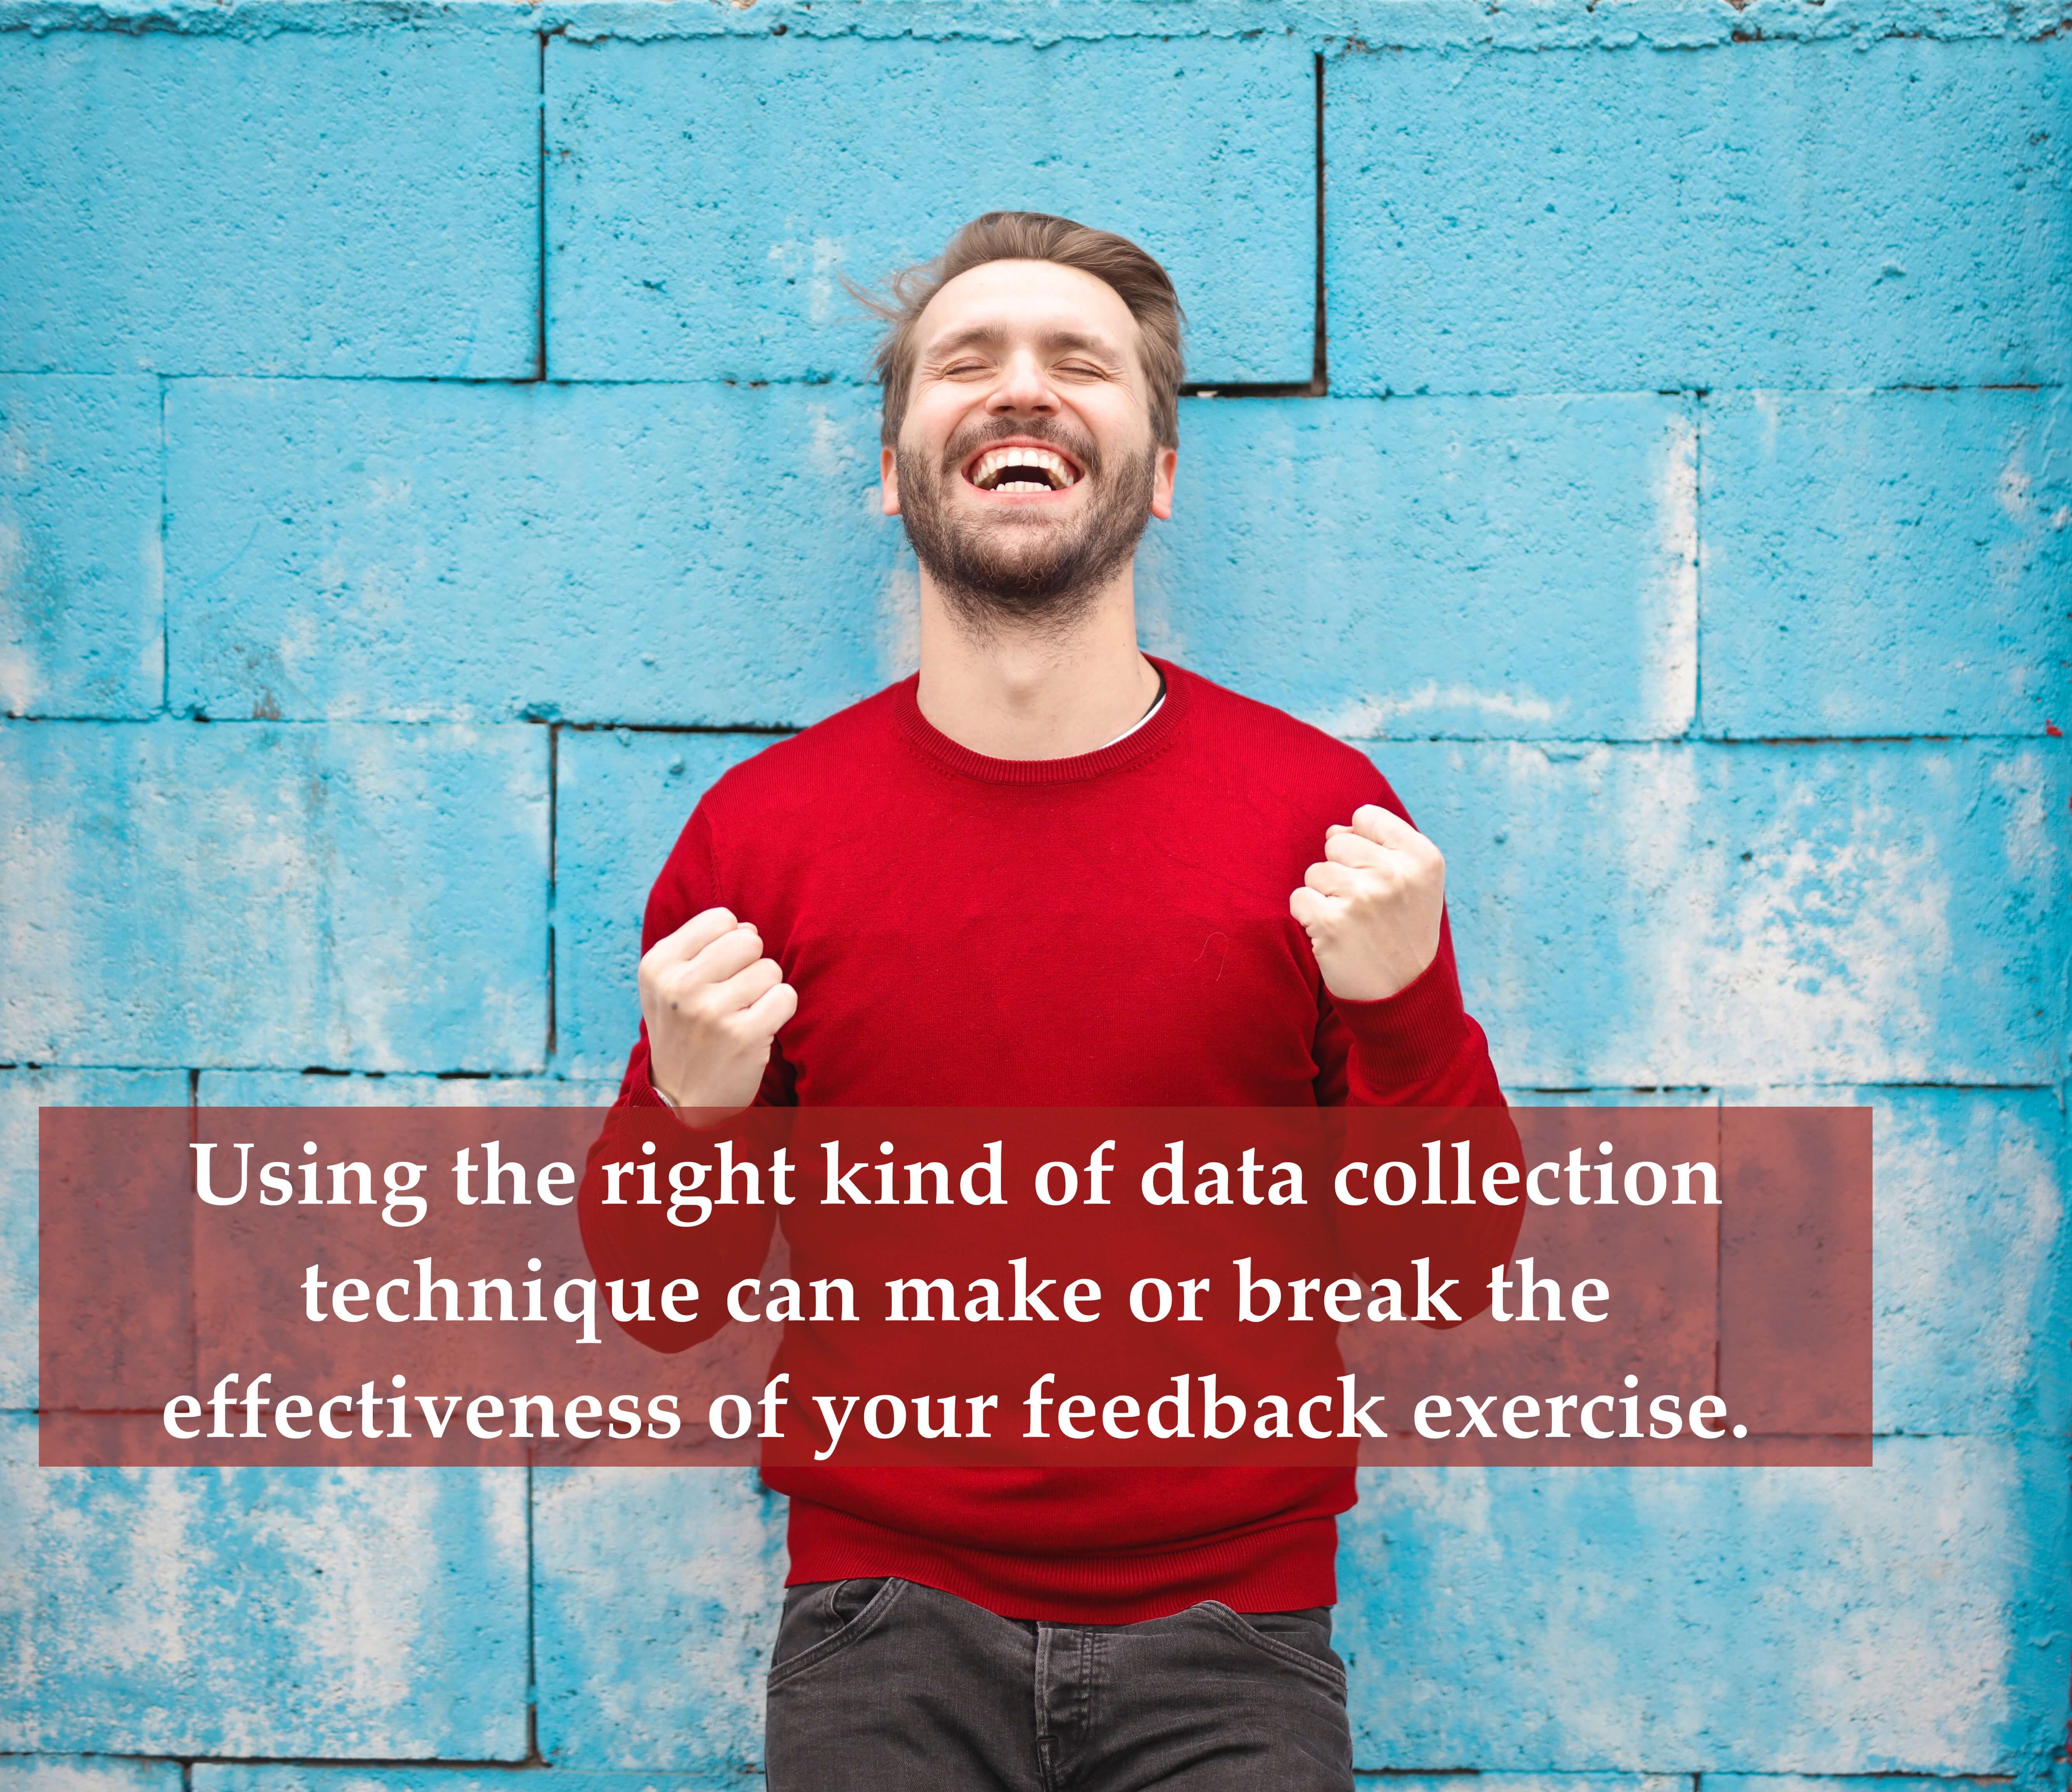 Using the right kind of data collection technique can make or break the effectiveness of your feedback exercise.